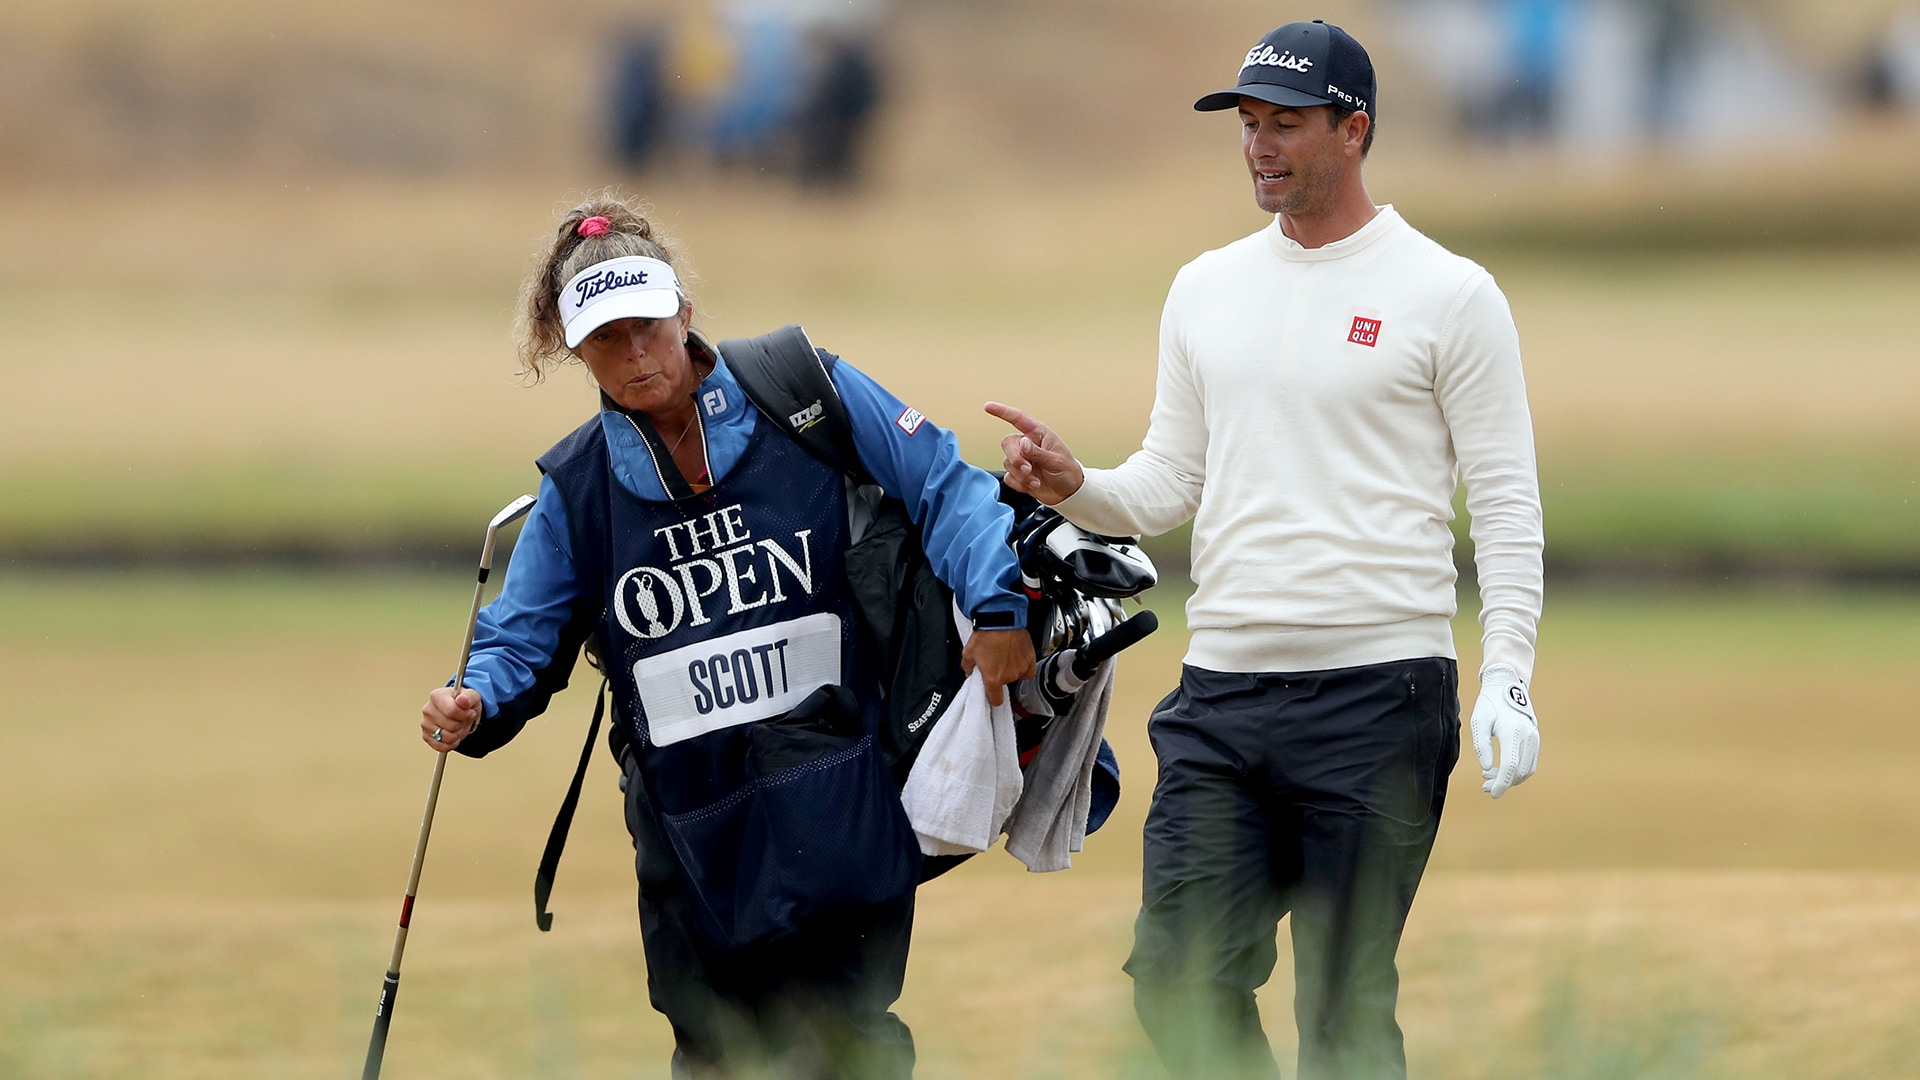 Fanny Sunesson and Adam Scott at the 2018 Open Championship.